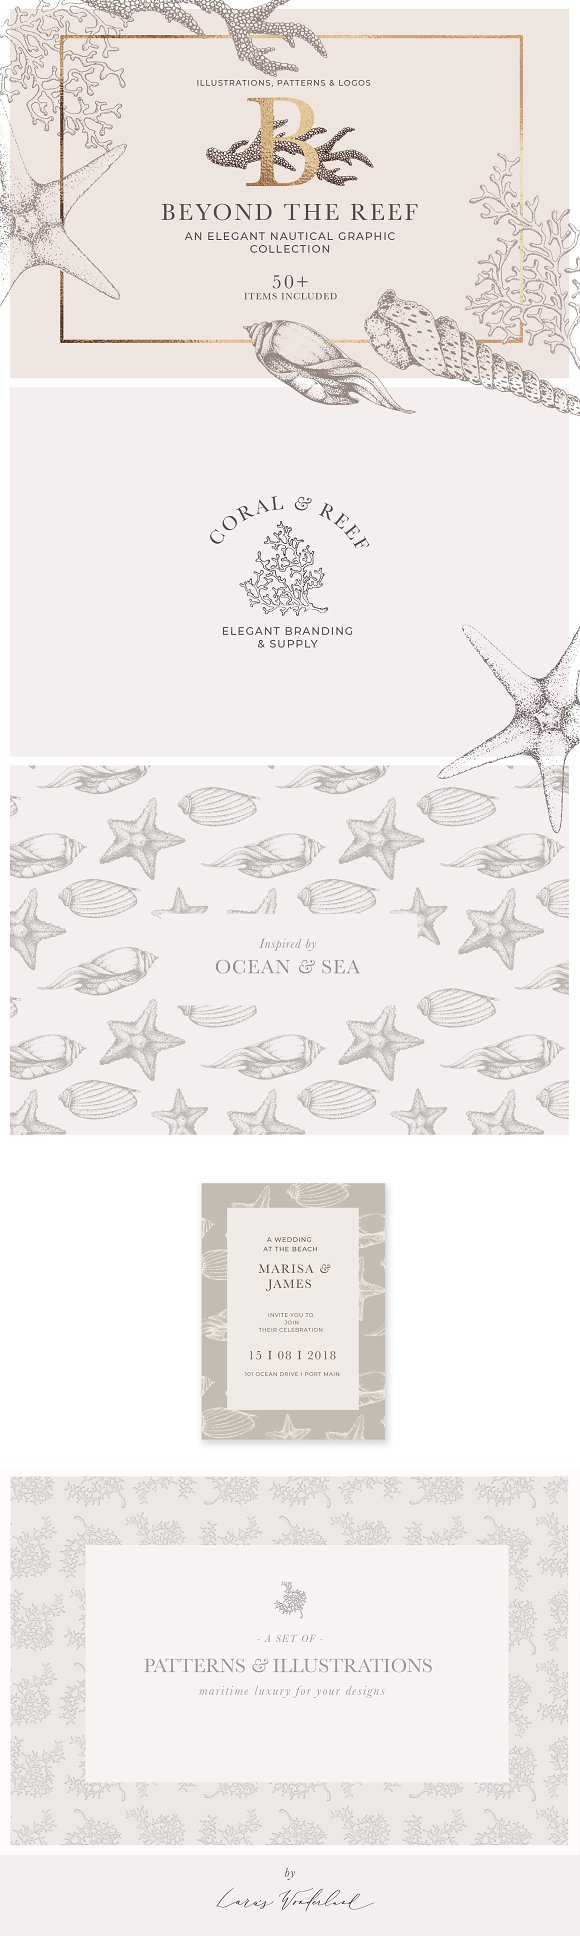 Coral Beach Maritime Illustrations